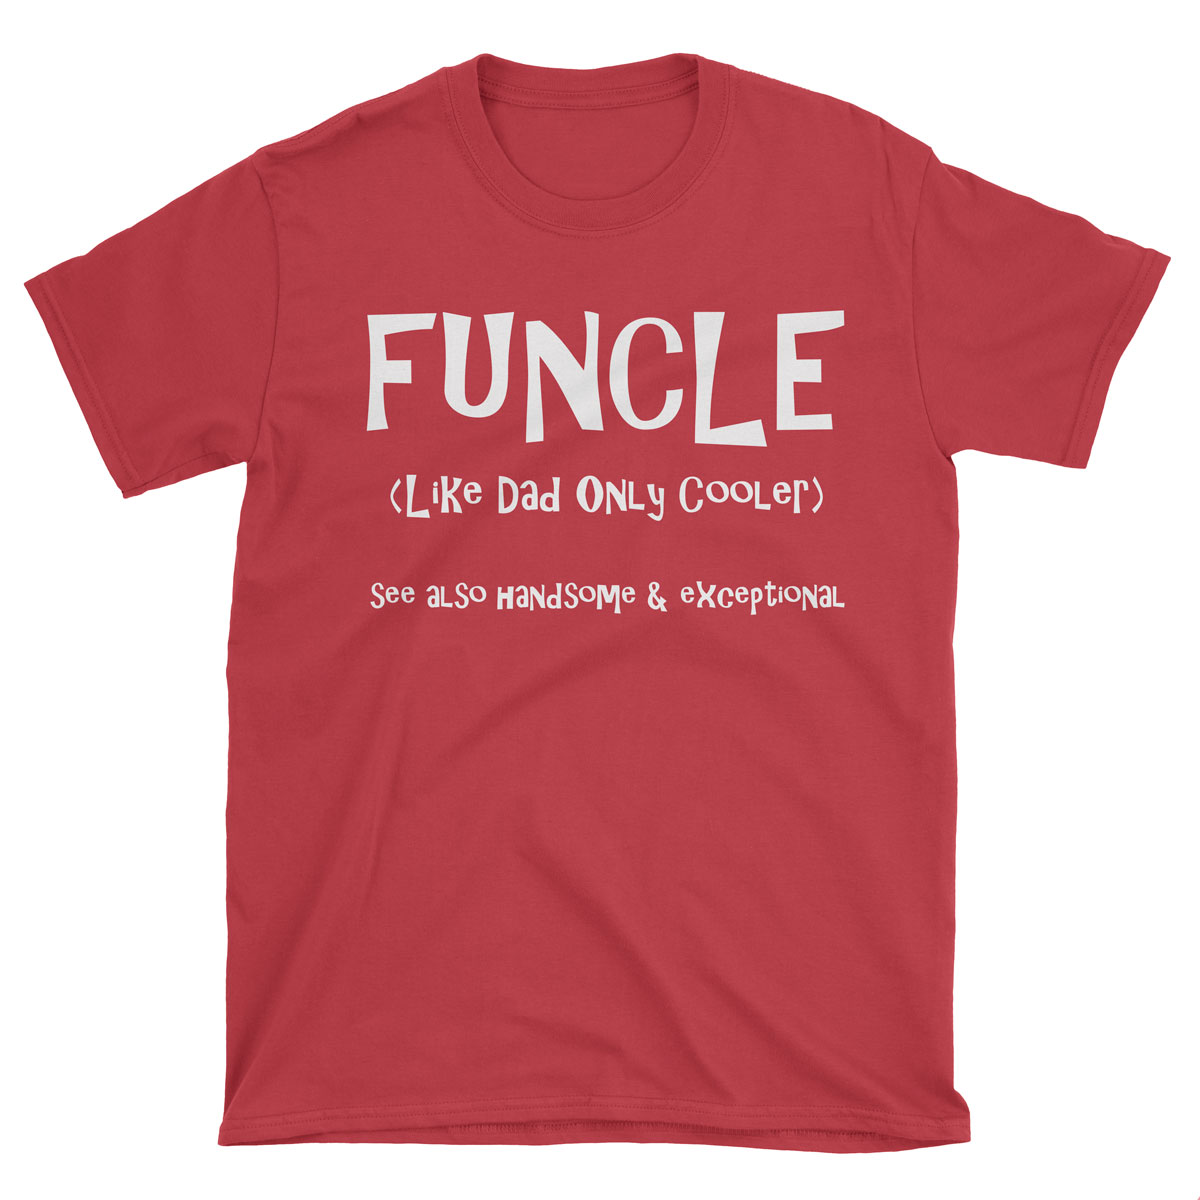 0632ce8e Funcle T-shirt – Weeded Words